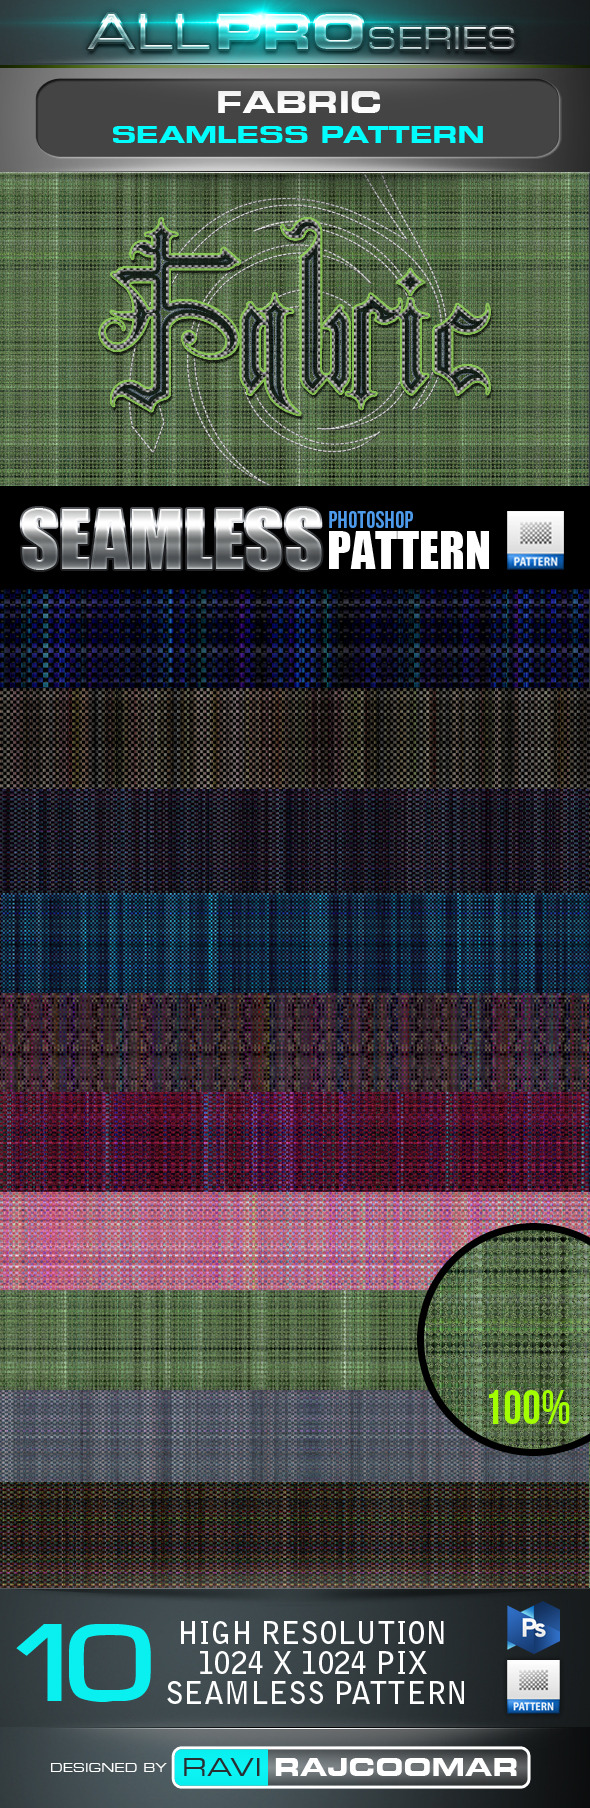 Fabric Seamless Tileable Pattern - Textures / Fills / Patterns Photoshop